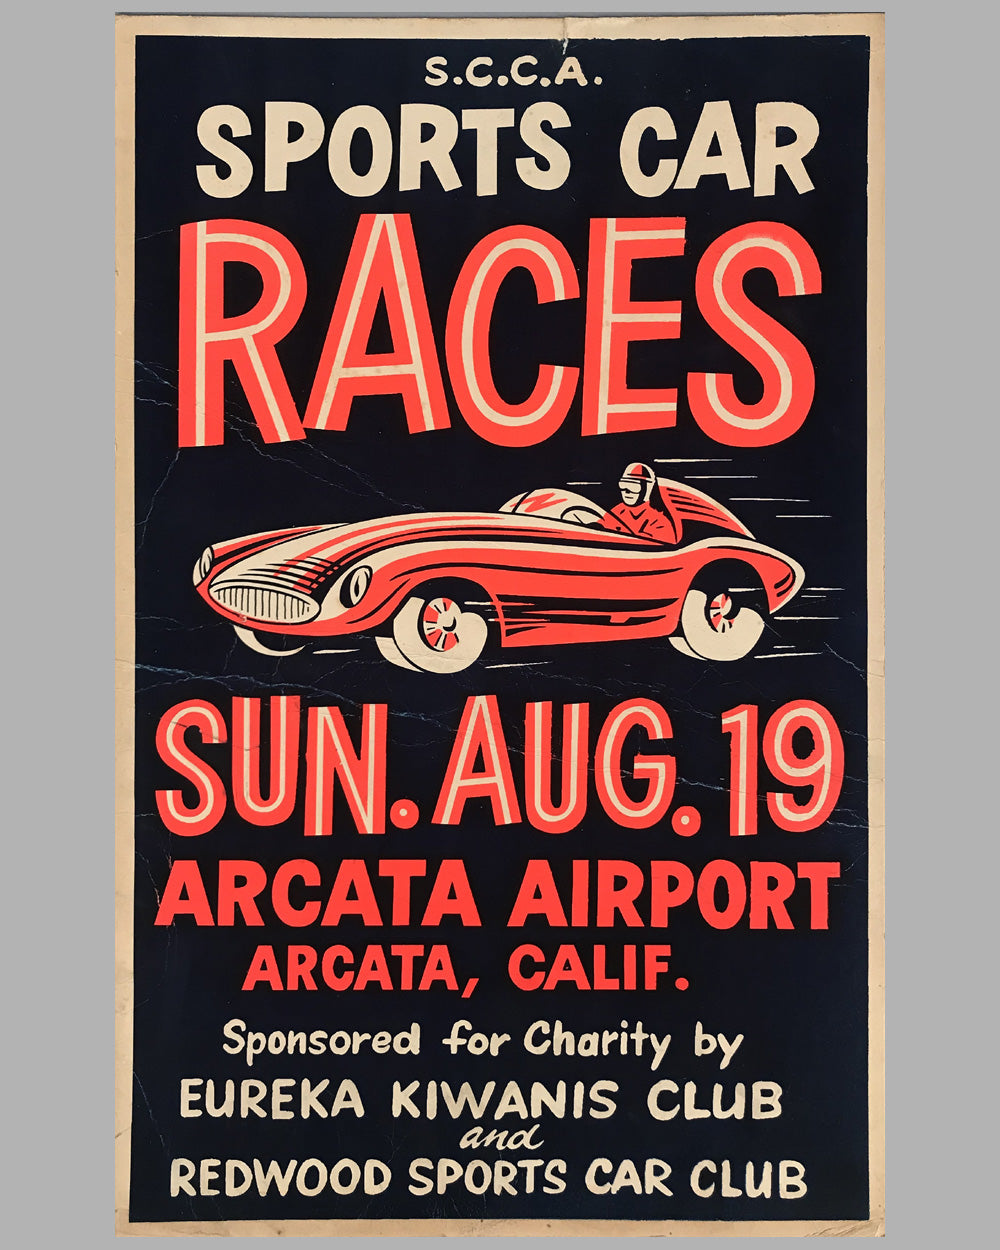 1956 SCCA Sports Car Races at Arcata Airport California original poster